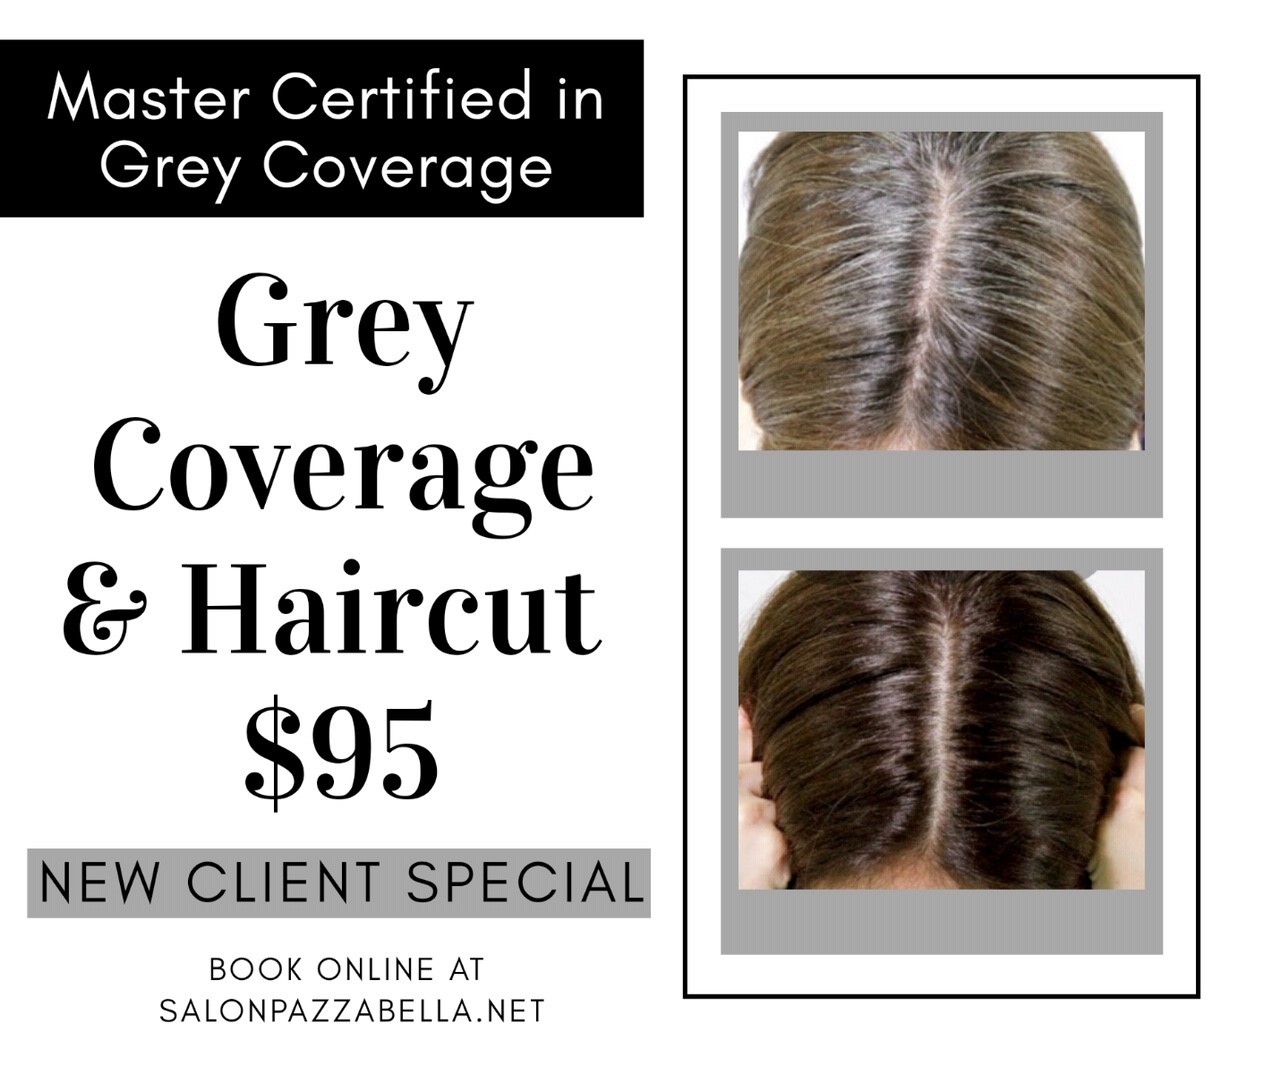 salon pazza bella specials grey